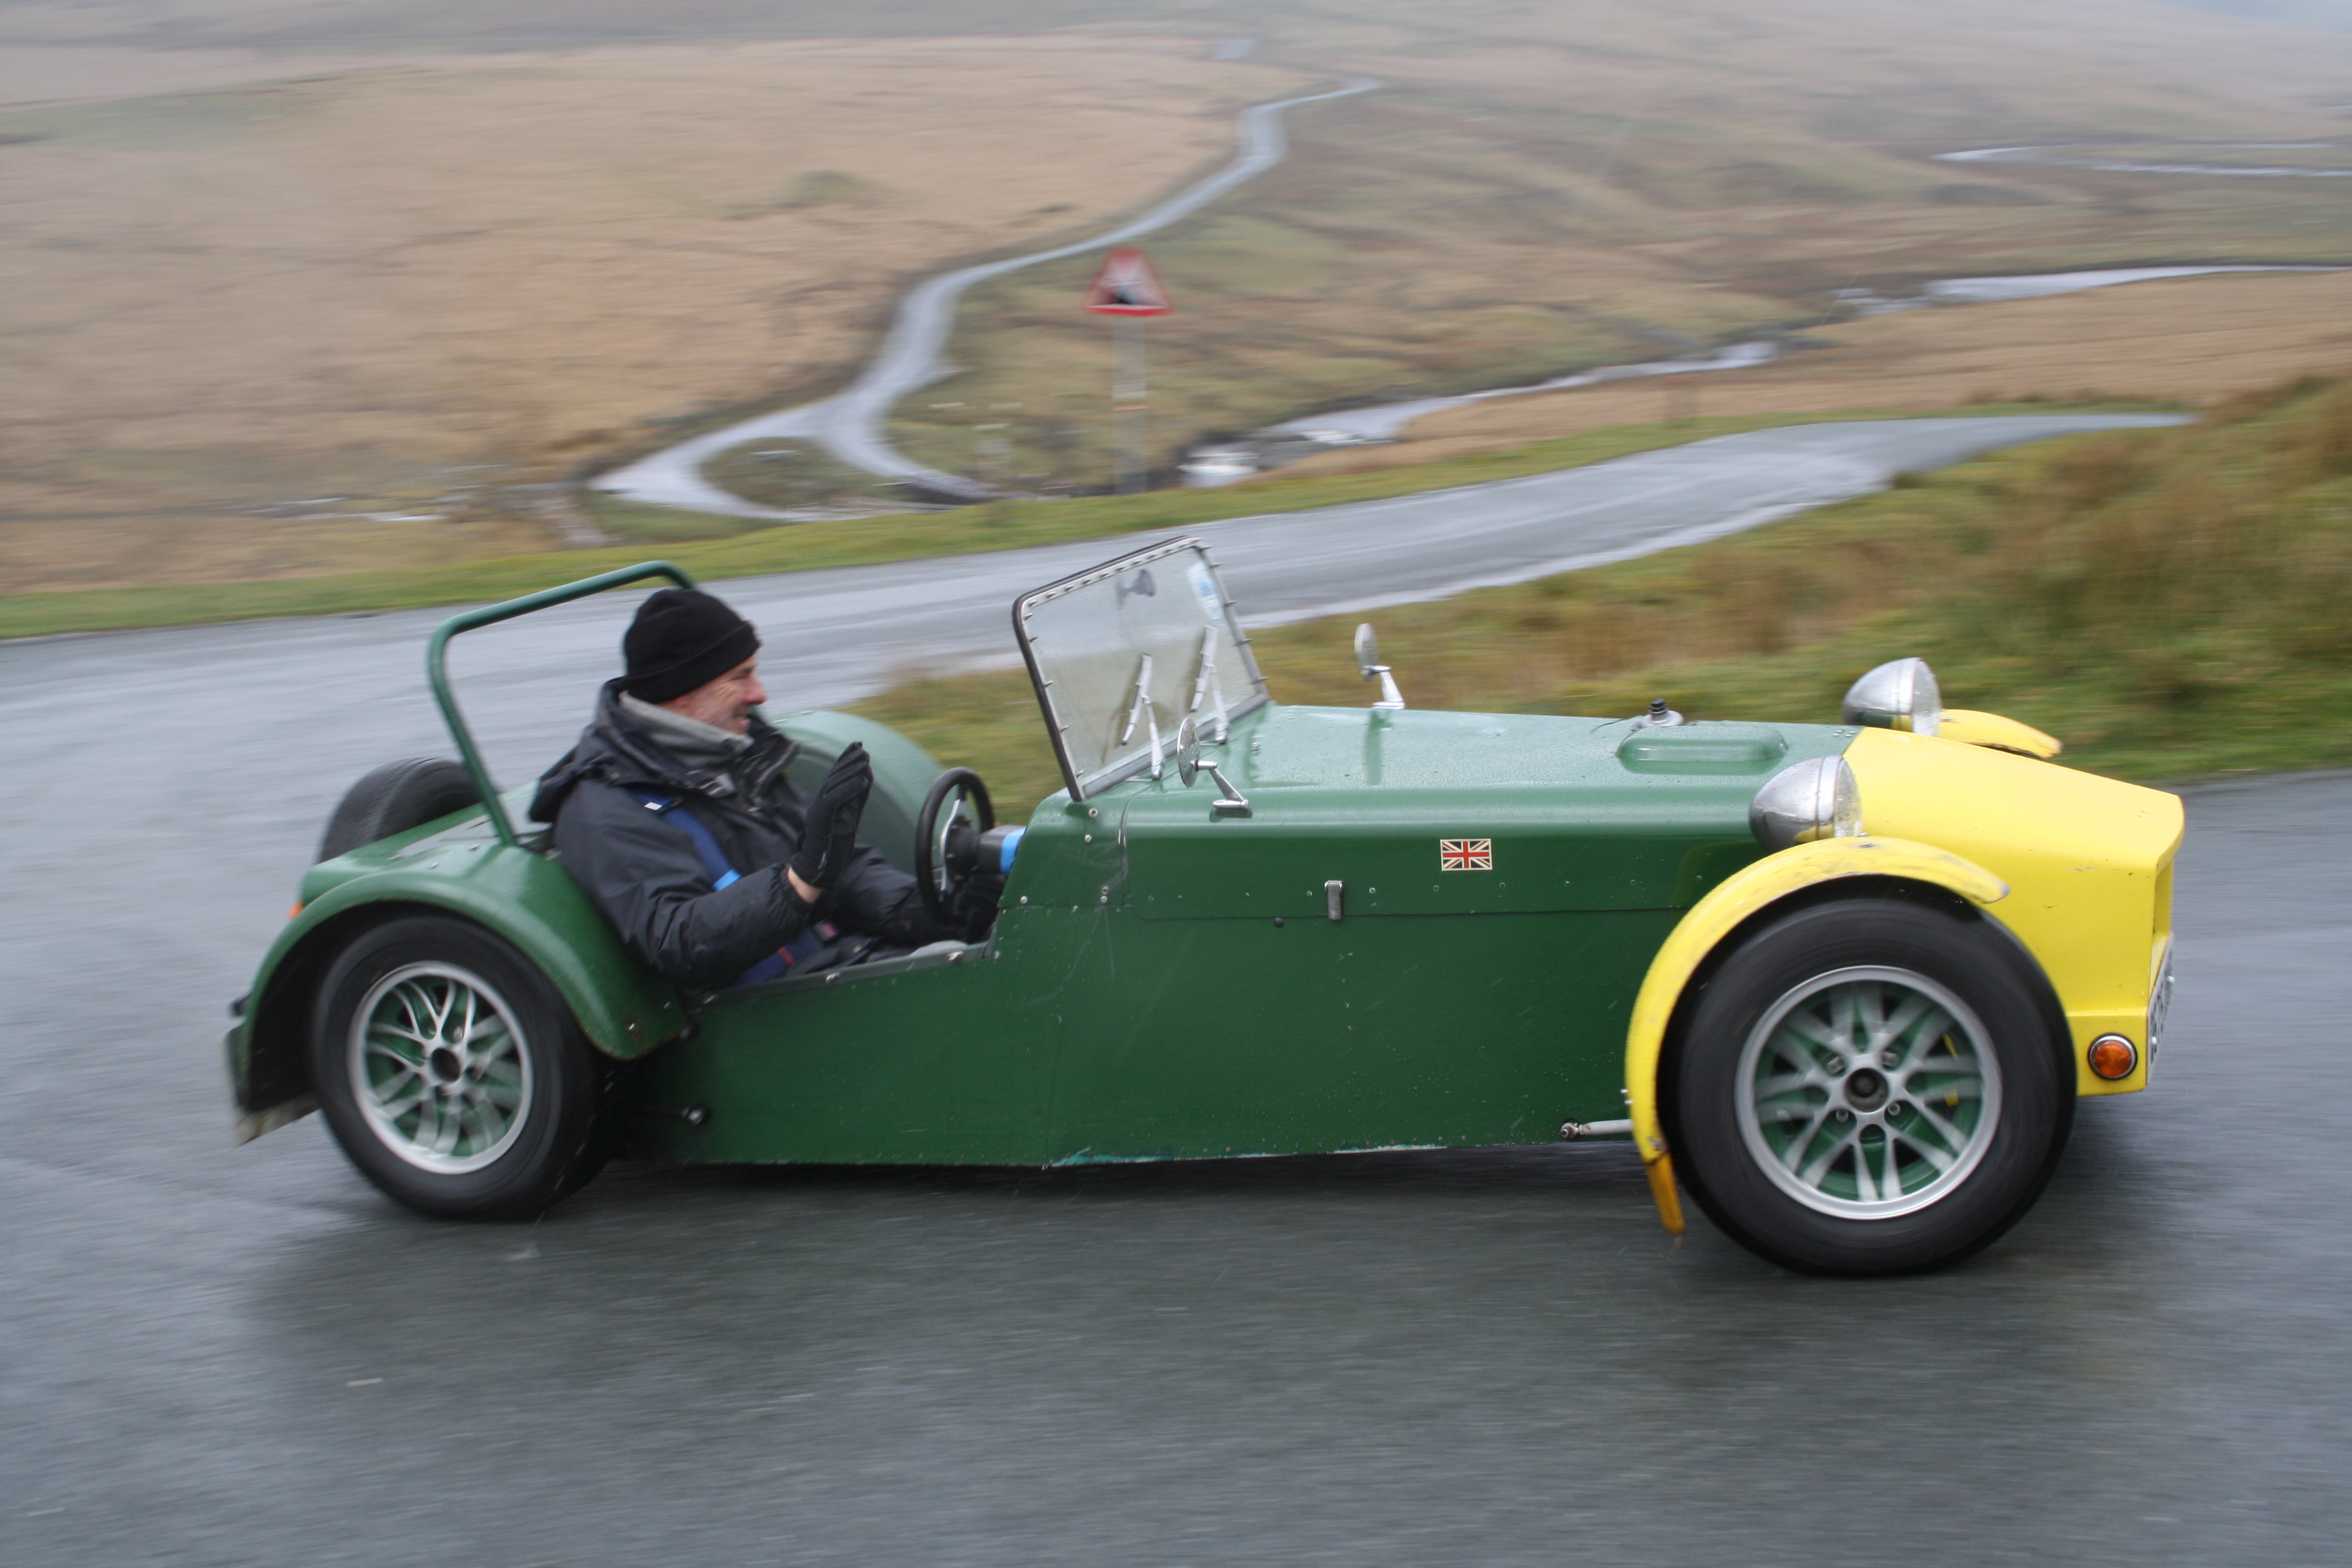 Kit car on a scenic drive